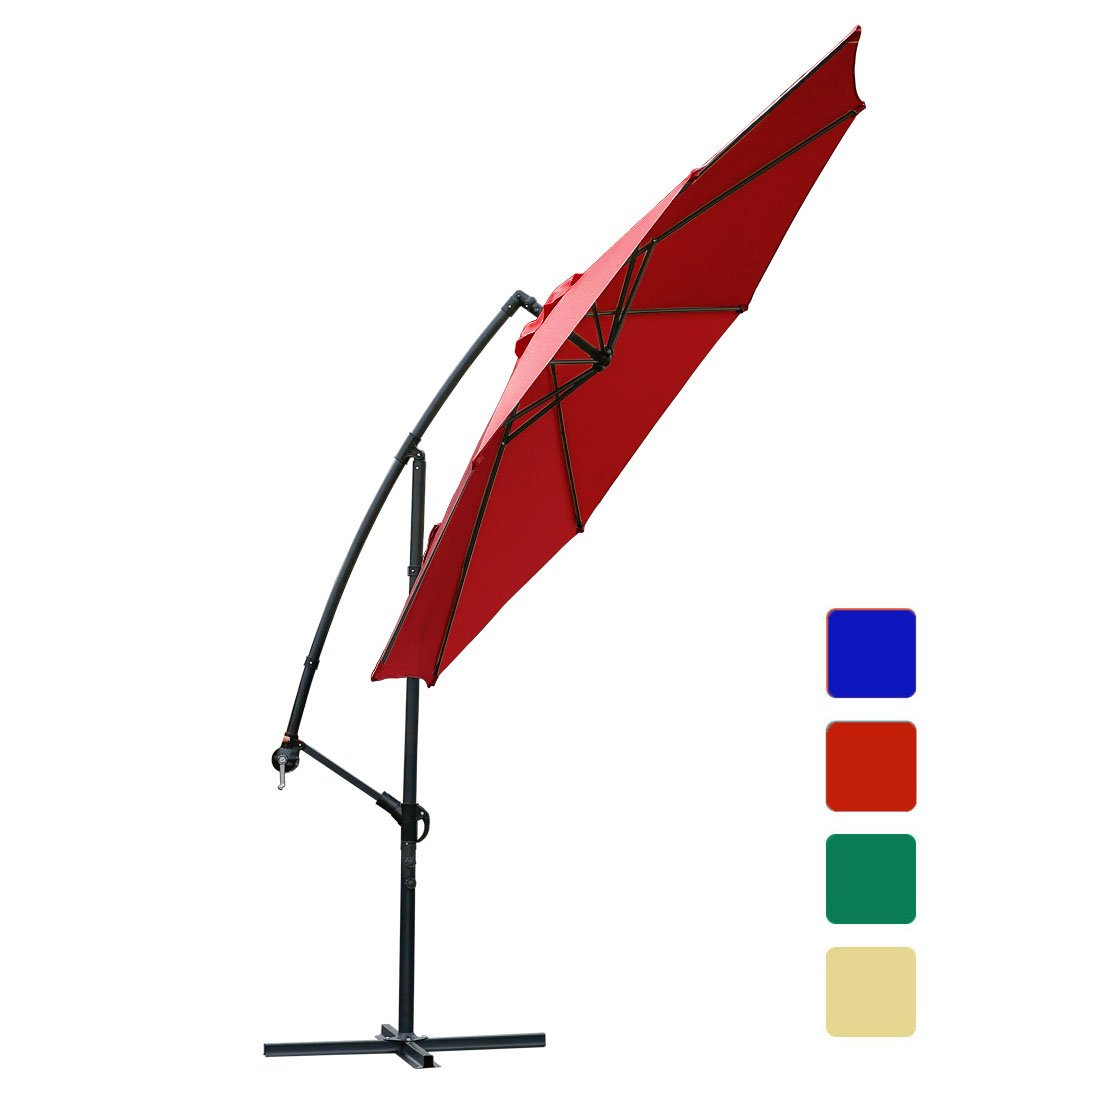 10 ft offset cantilever patio umbrella outdoor market hanging umbrellas & cranks with cross base, 8 ribs (10 ft, Red) by FARLAND